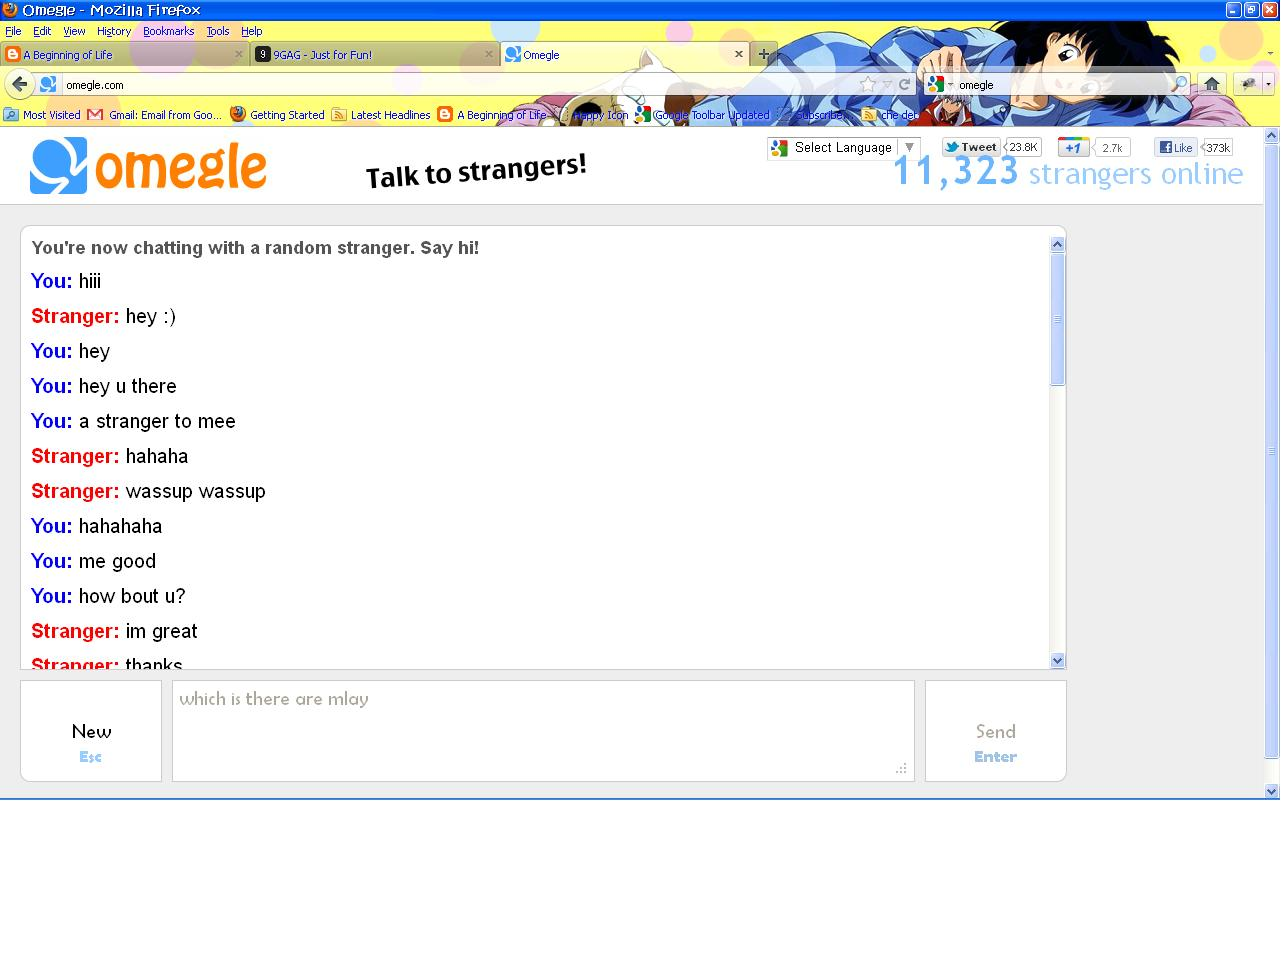 omegel talk to strangers